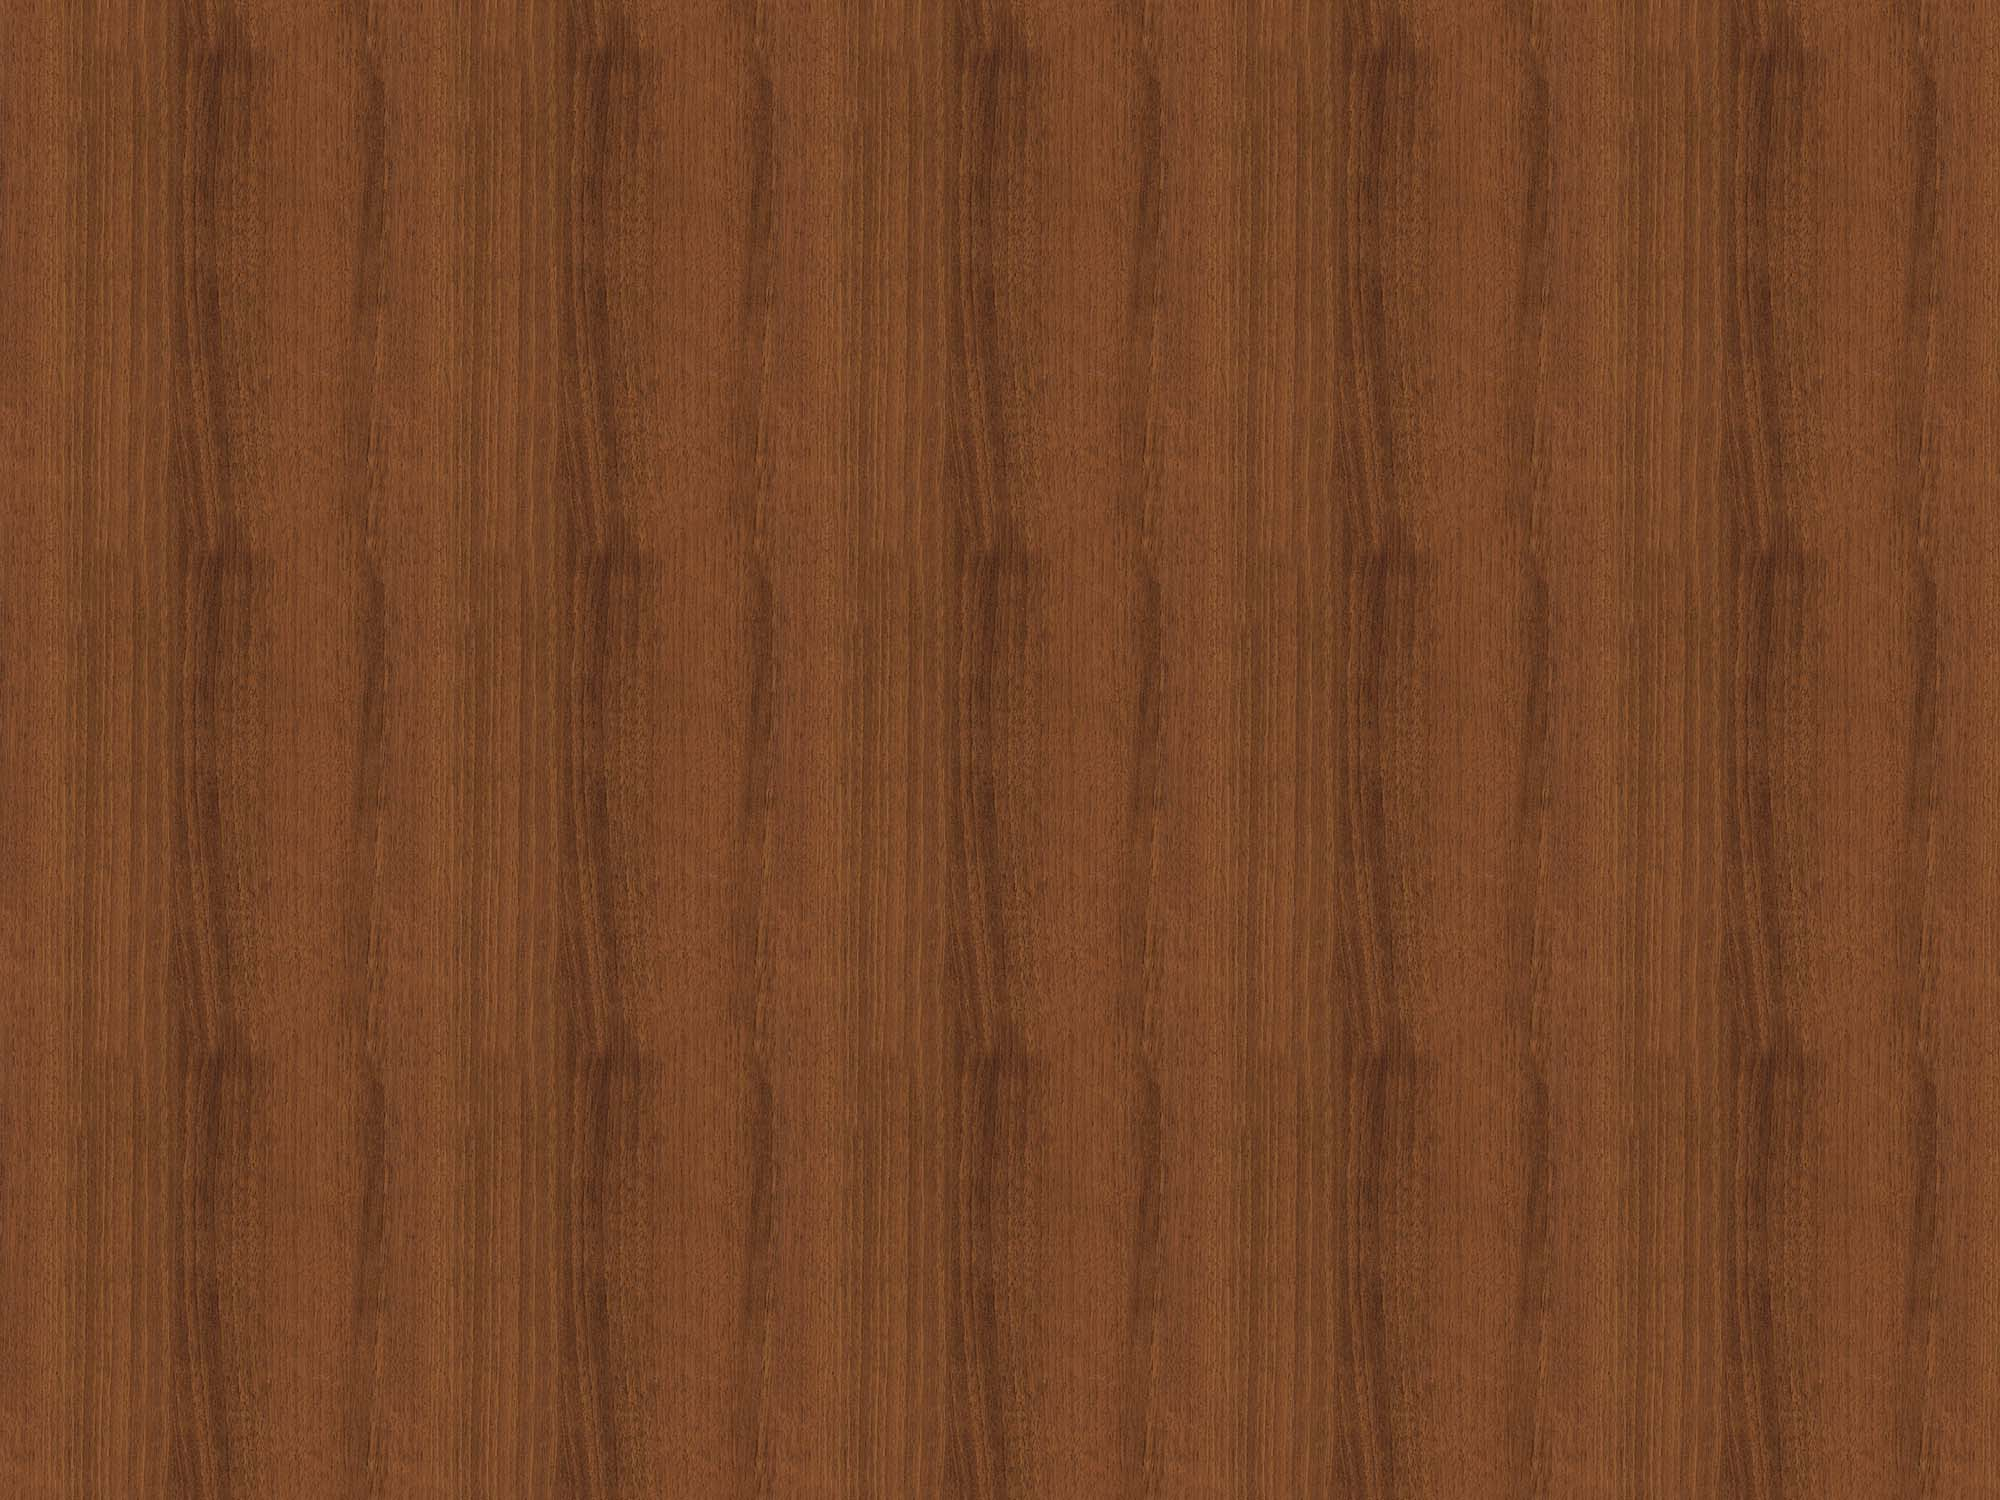 Free Wood Pattern Background (PNG)